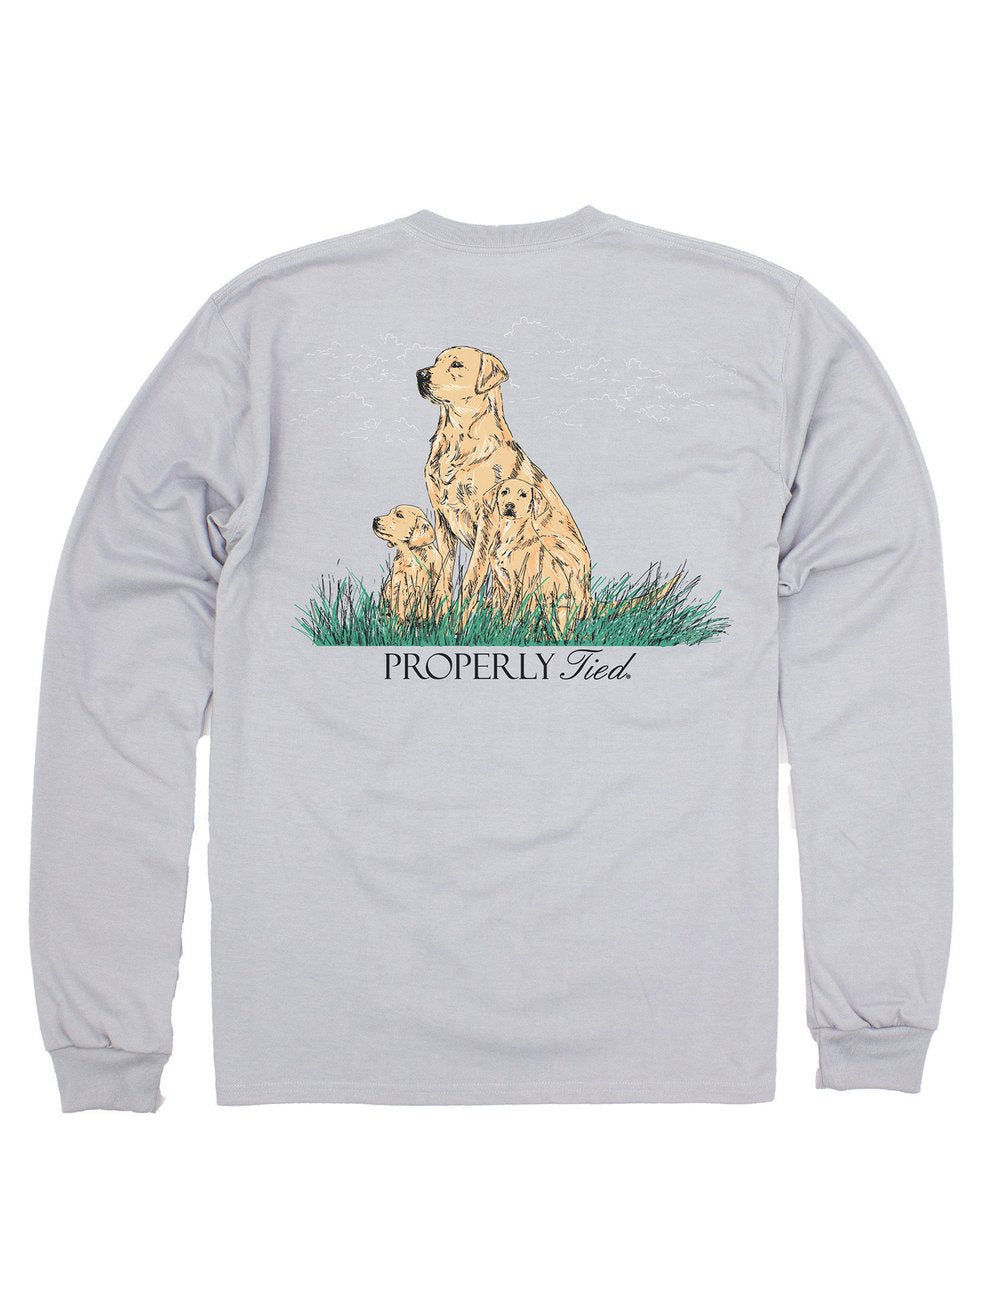 DOG DAYS LONGSLEEVE T-SHIRT